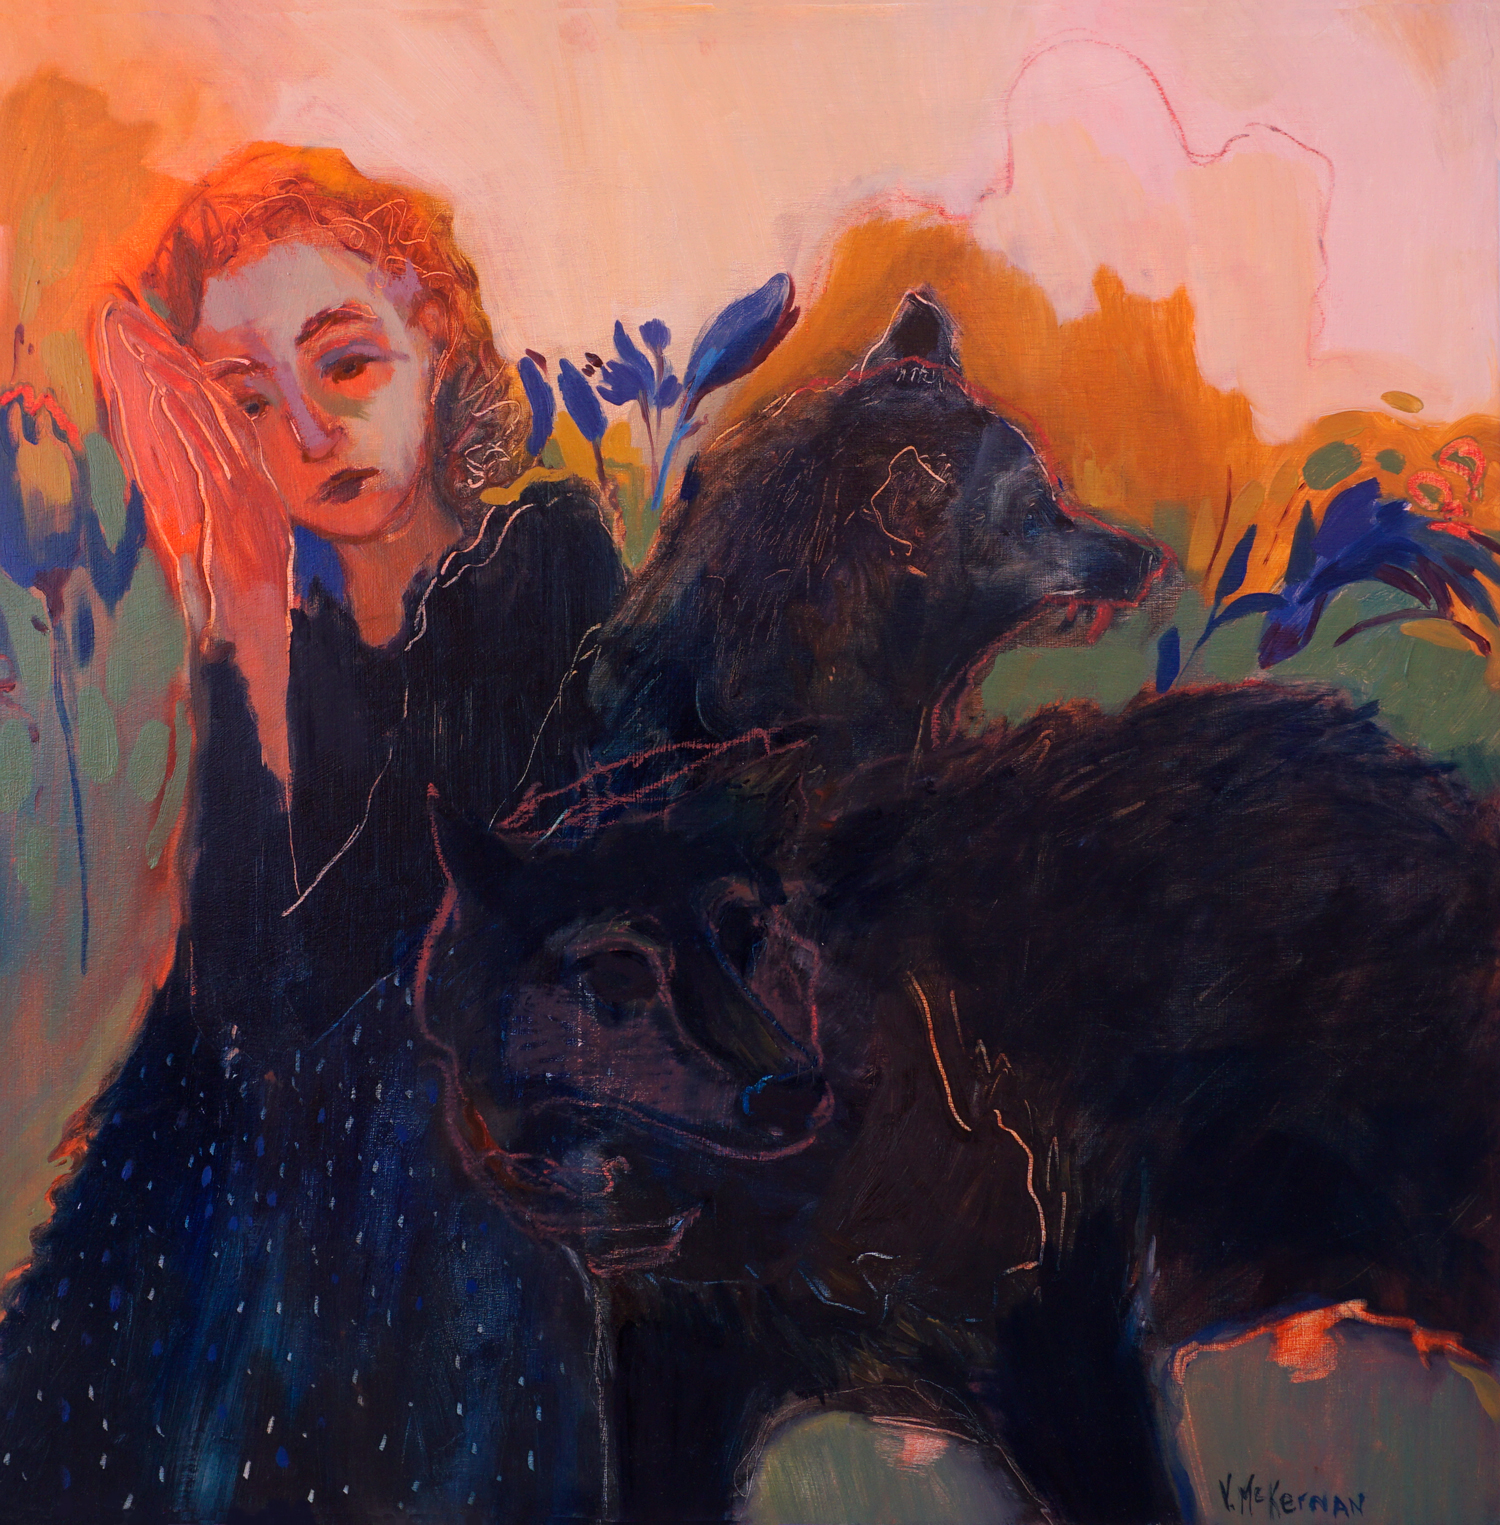 With Wolves Oil on panel 24 x 24 in. $1100